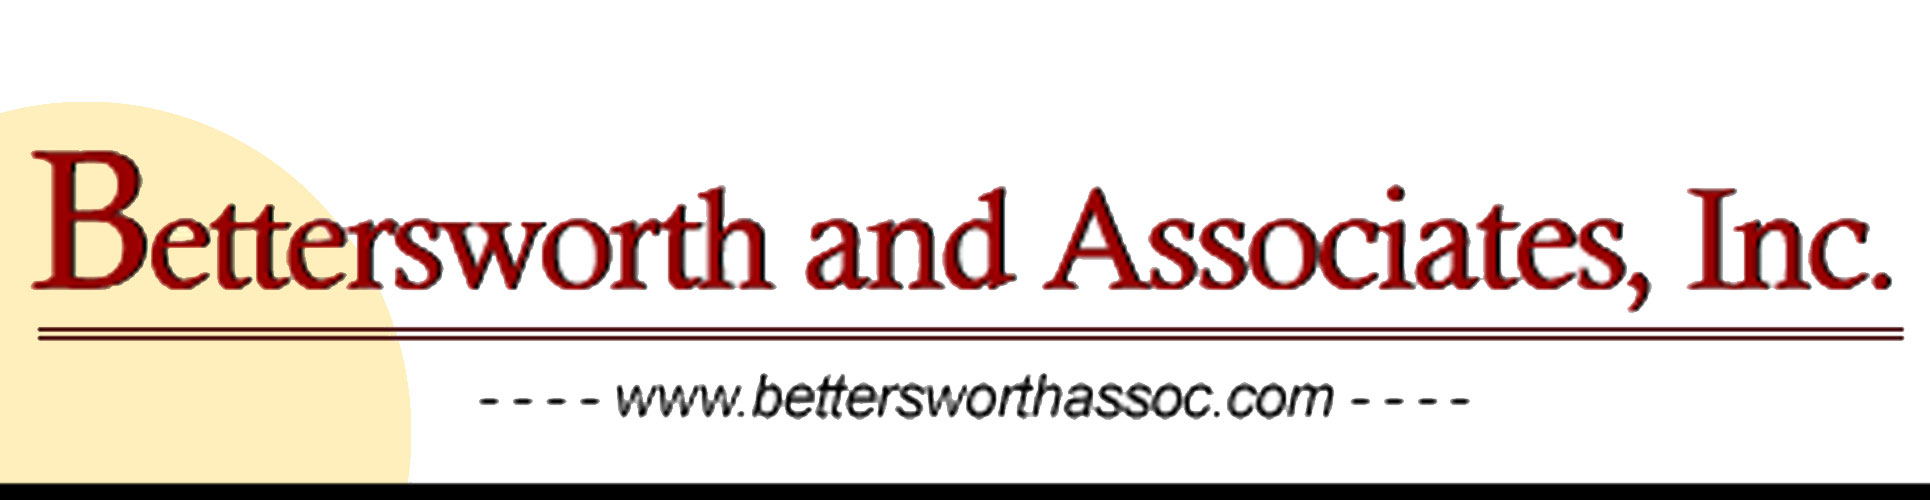 Bettersworth & Associates, Inc.